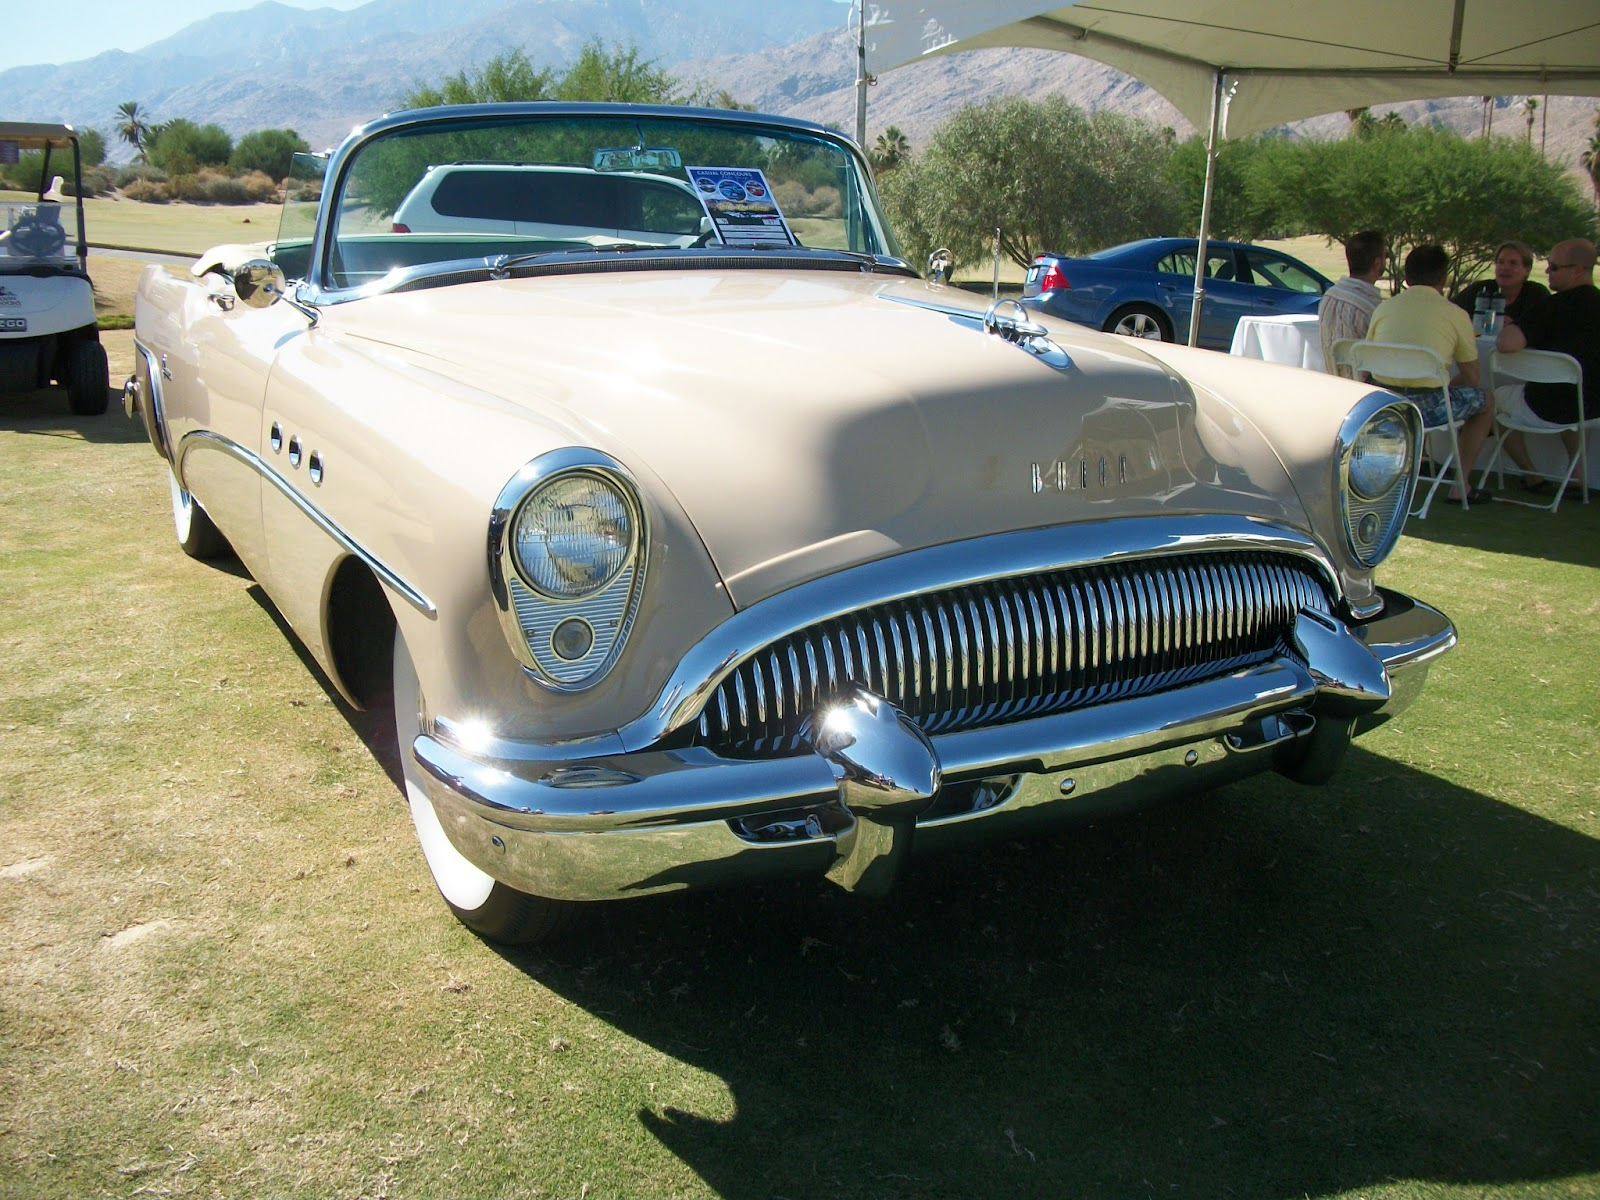 Reynolds Buick Gmc Blog Feature Car 54 Super Out Of The 1955 Electra 225 Convertible Stream Commerce This Beautiful 1954